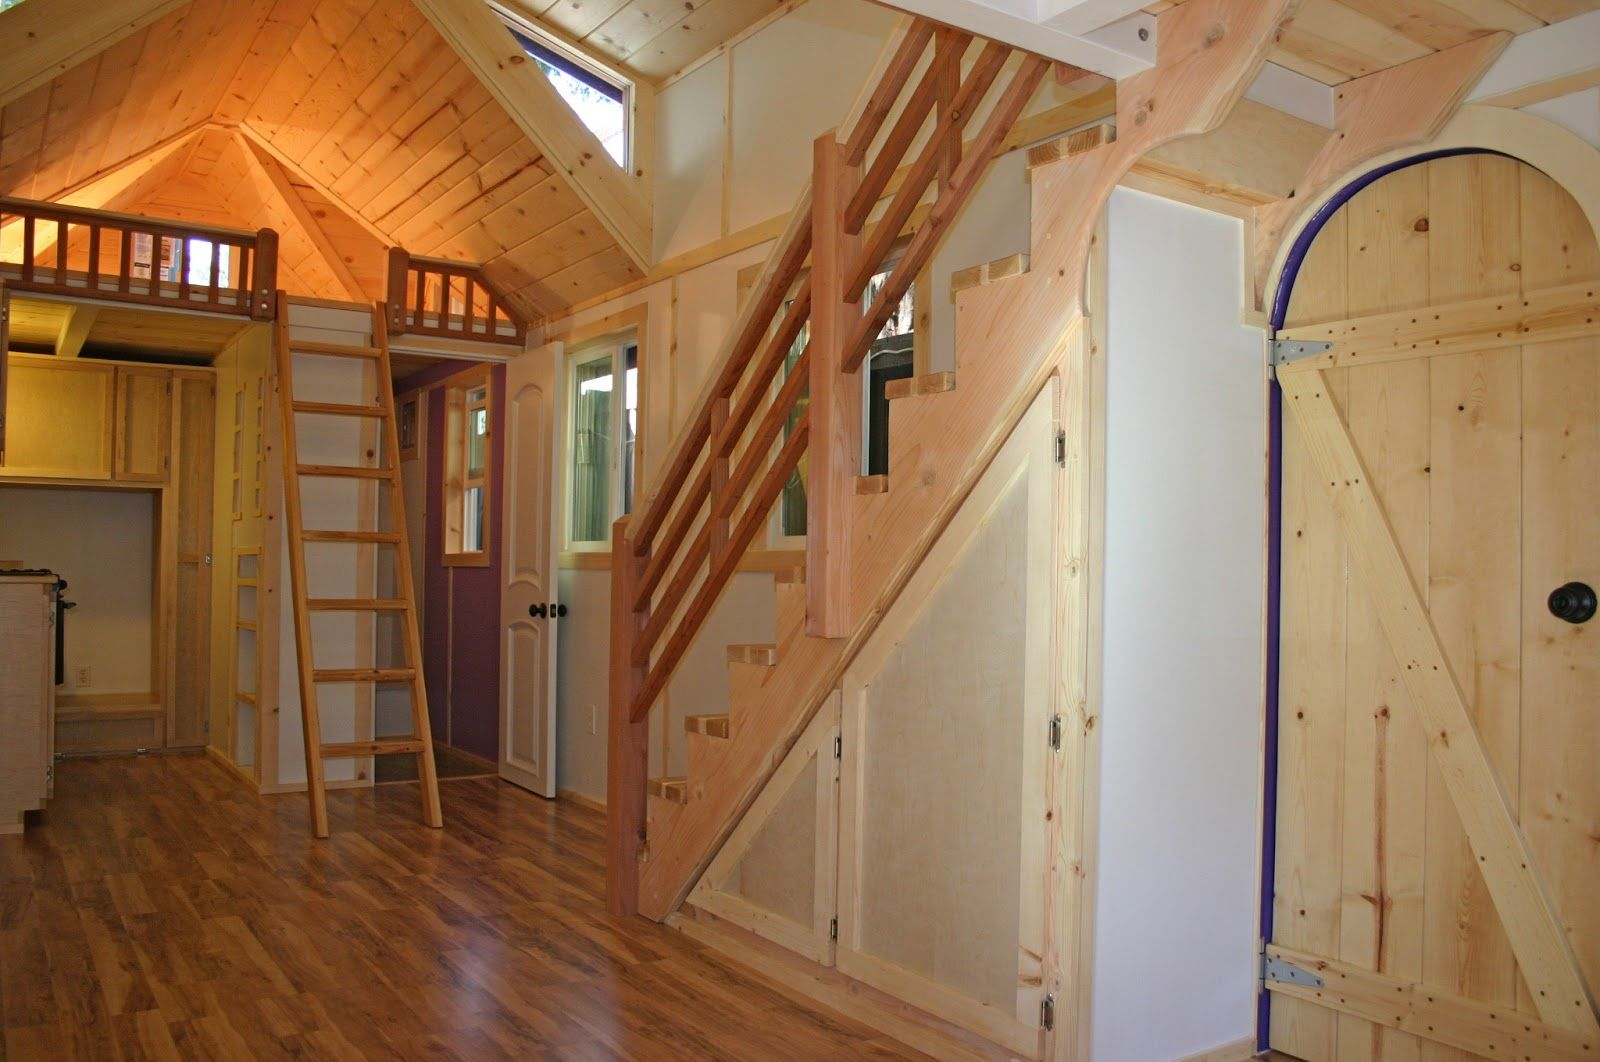 Molecule Tiny Homes Llc: Reminds Me Of A Tree House With Secret Doors And Passages